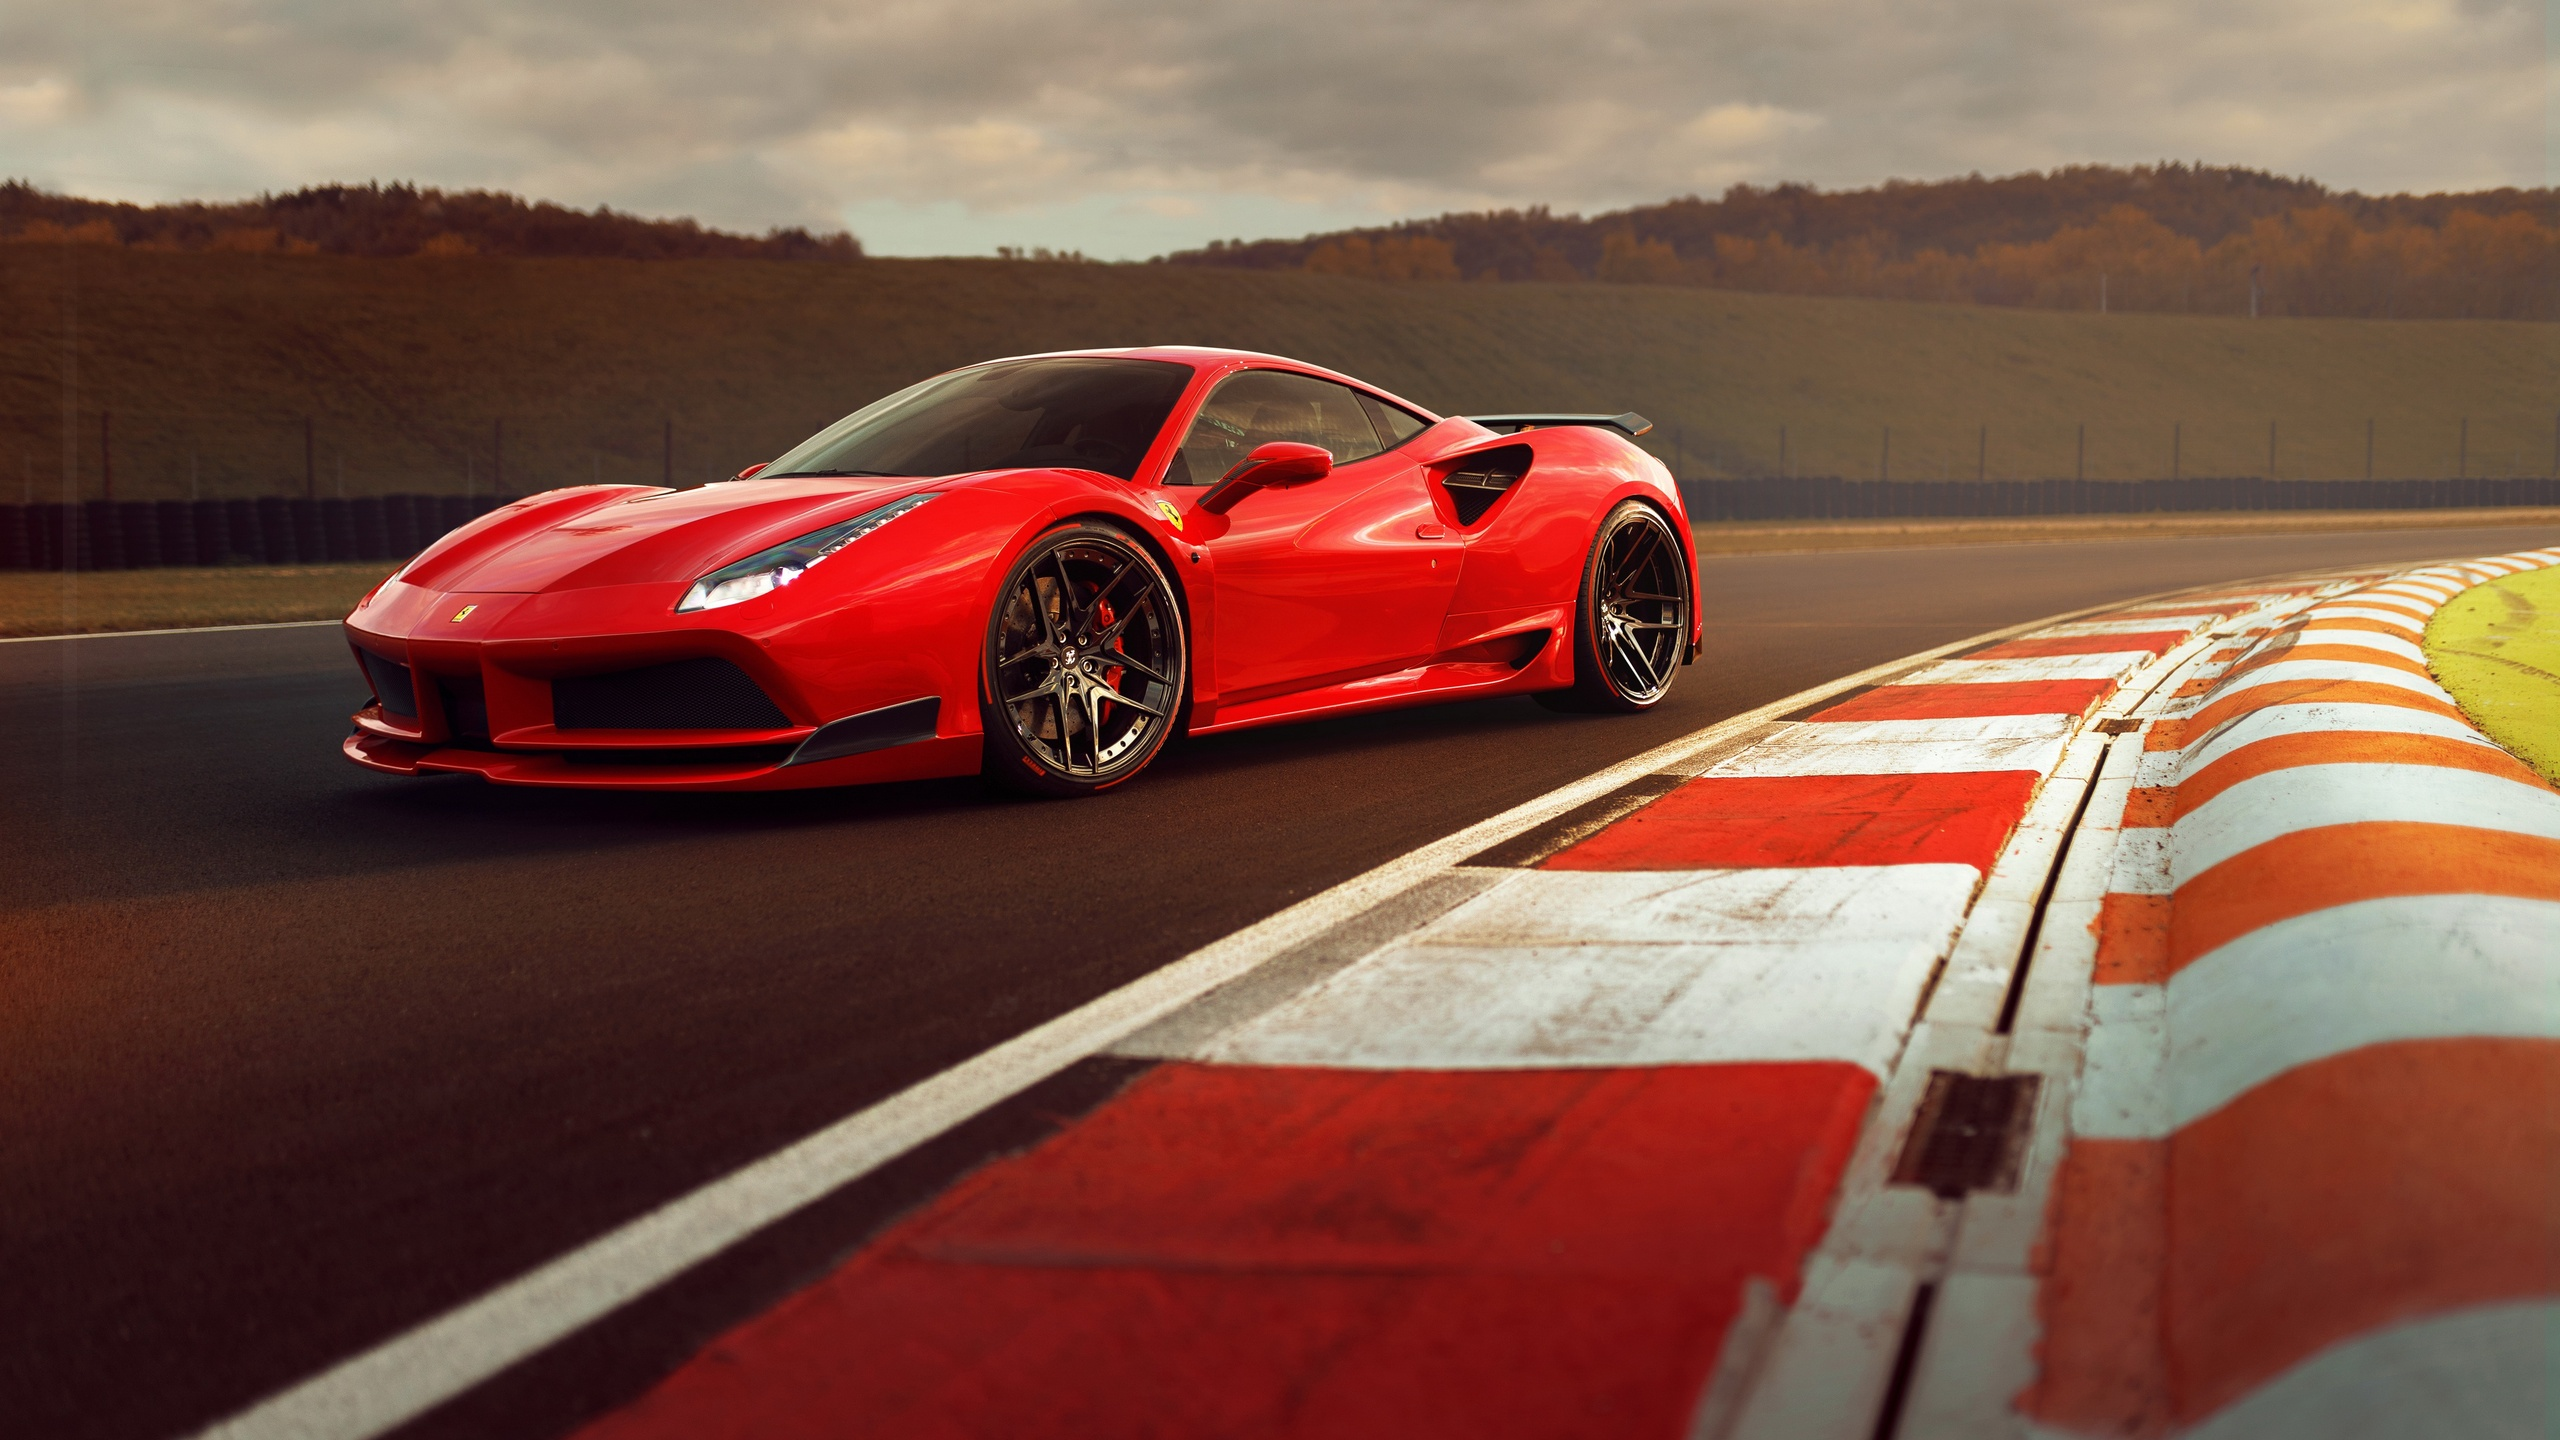 2560x1440 Ferrari 488 Gtb 4k 1440P Resolution HD 4k ...